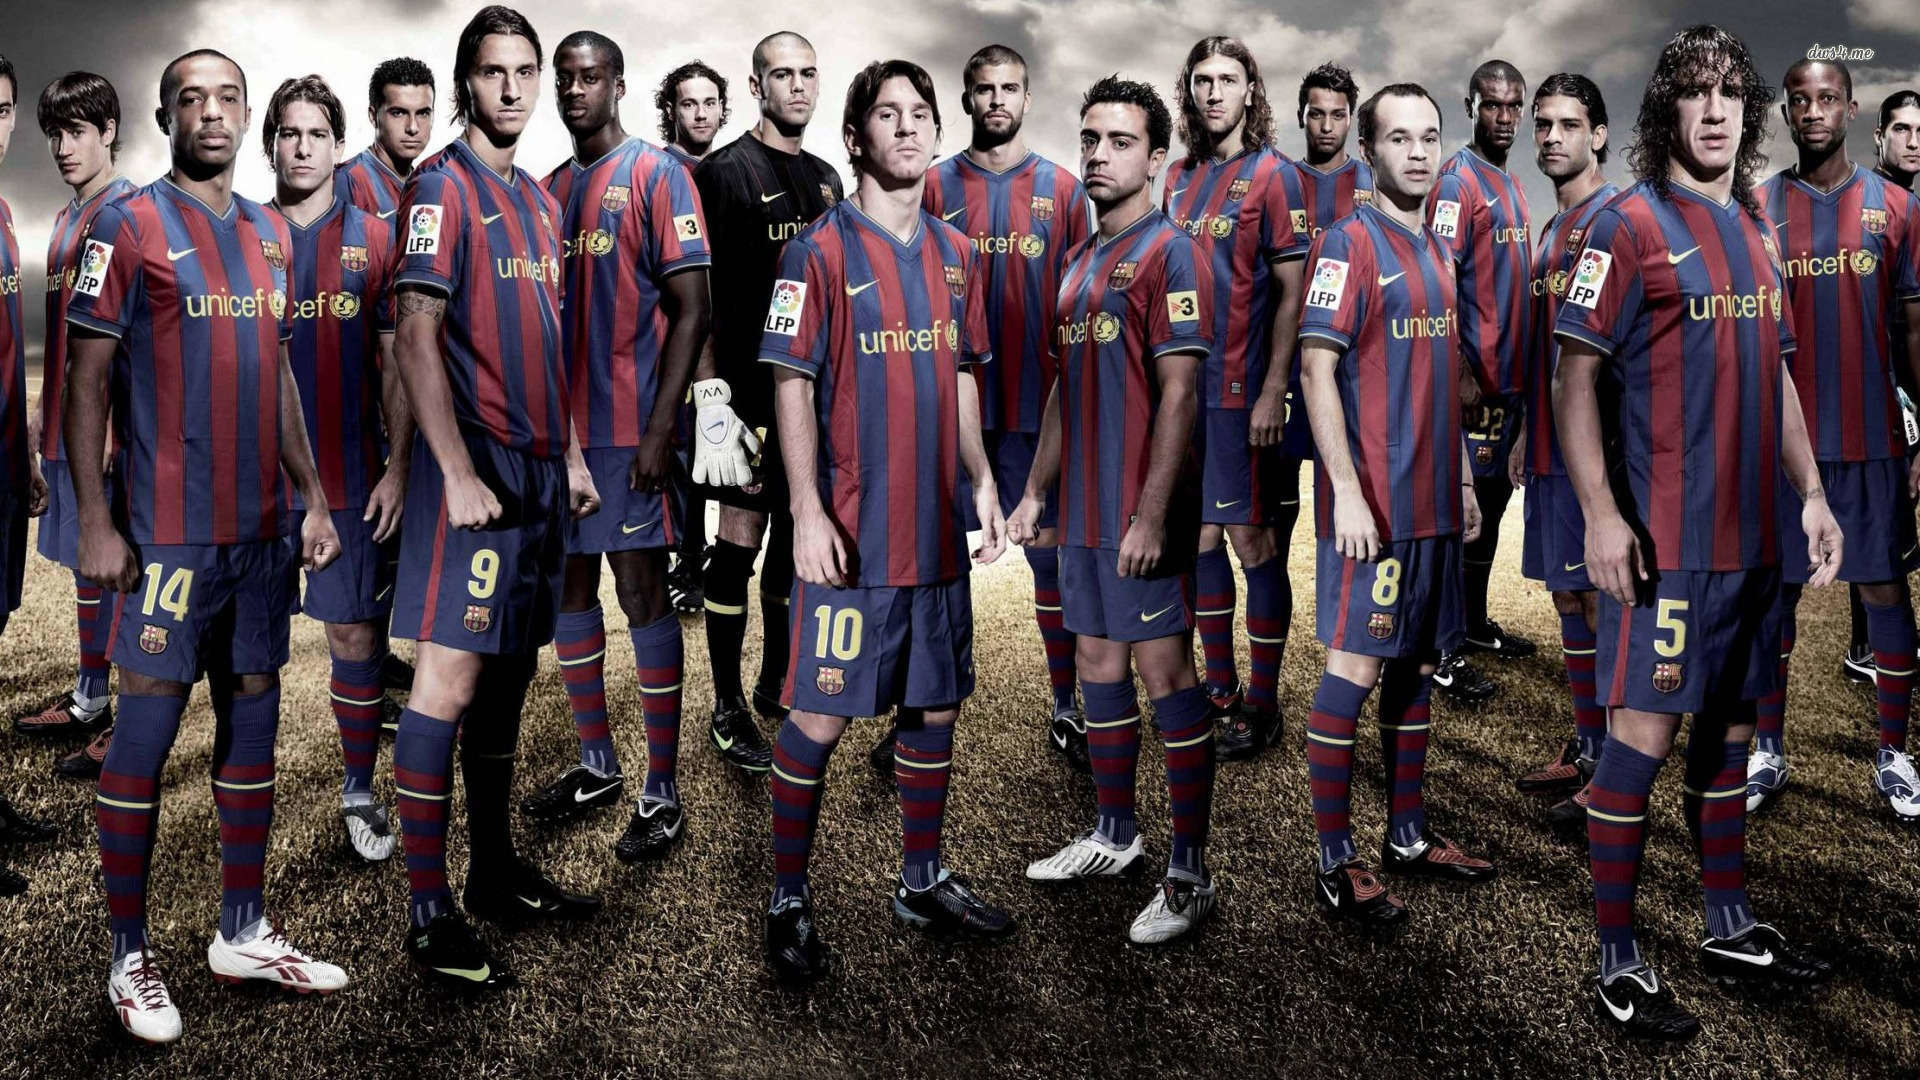 Res: 1920x1080, FC Barcelona 13/14 Home + Away Kits Released + Third Kit Info